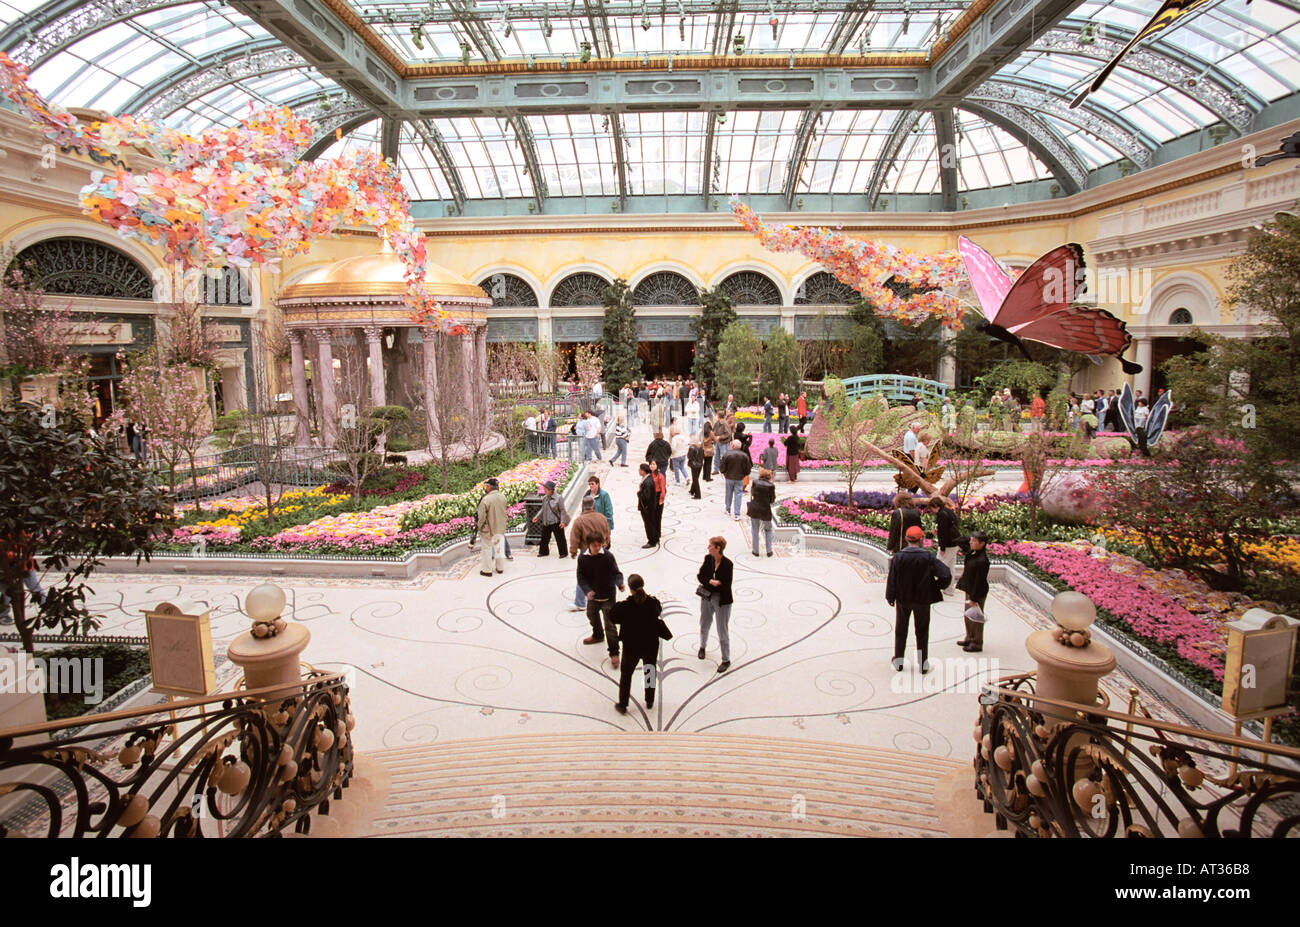 Conservatory And Botanical Garden Inside Bellagio Hotel Las Vegas Nevada USA